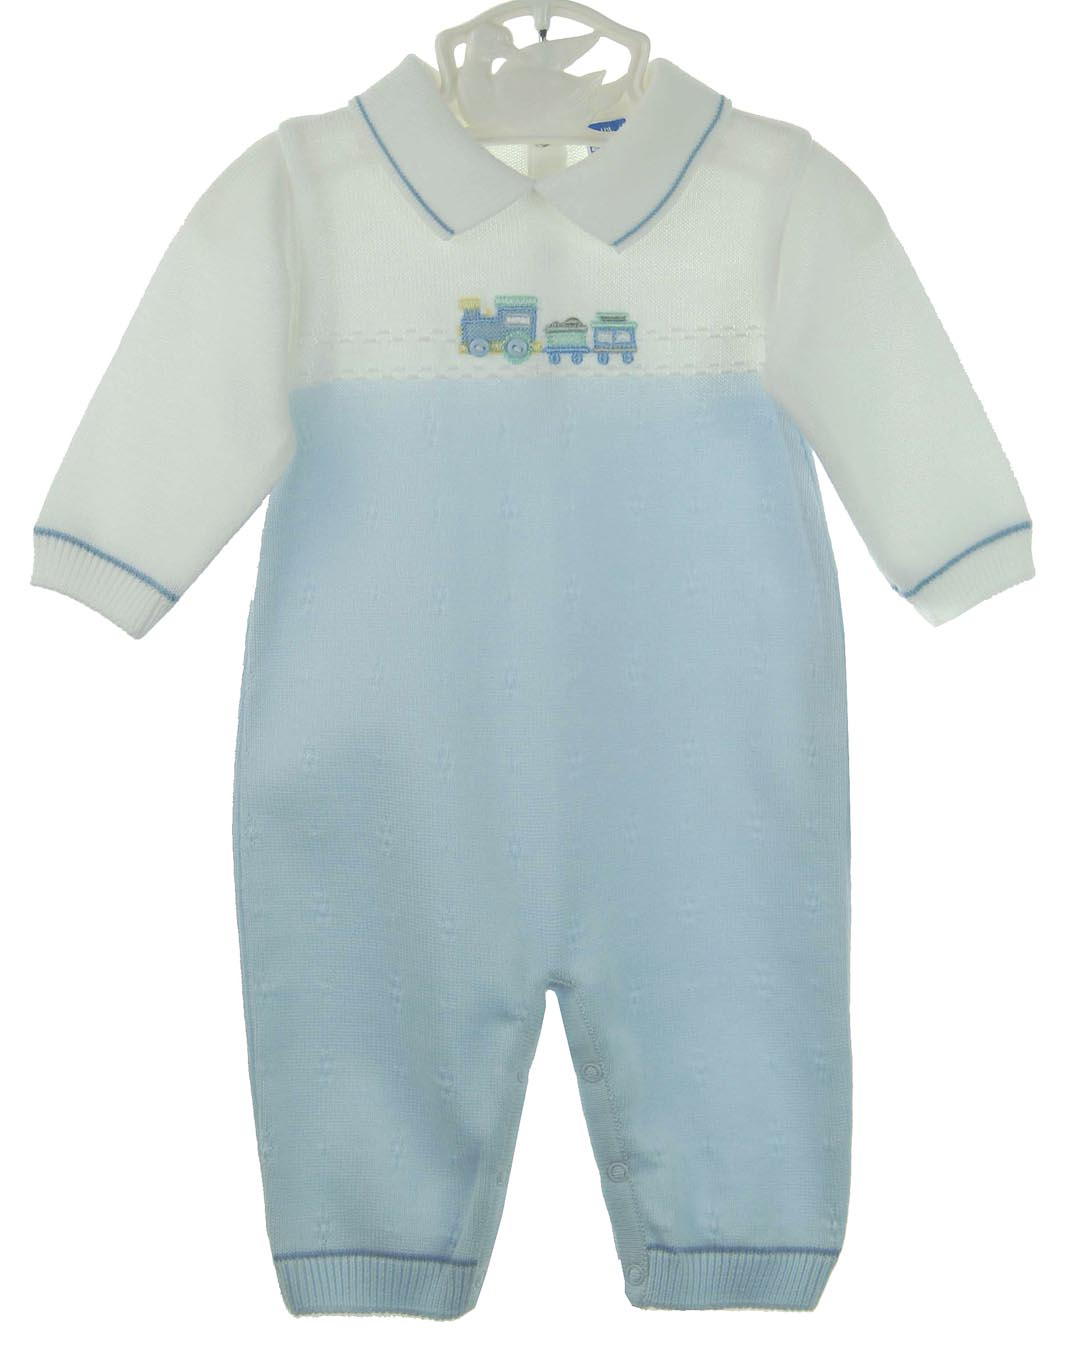 External Image - Baby Boy Coming Home Outfits